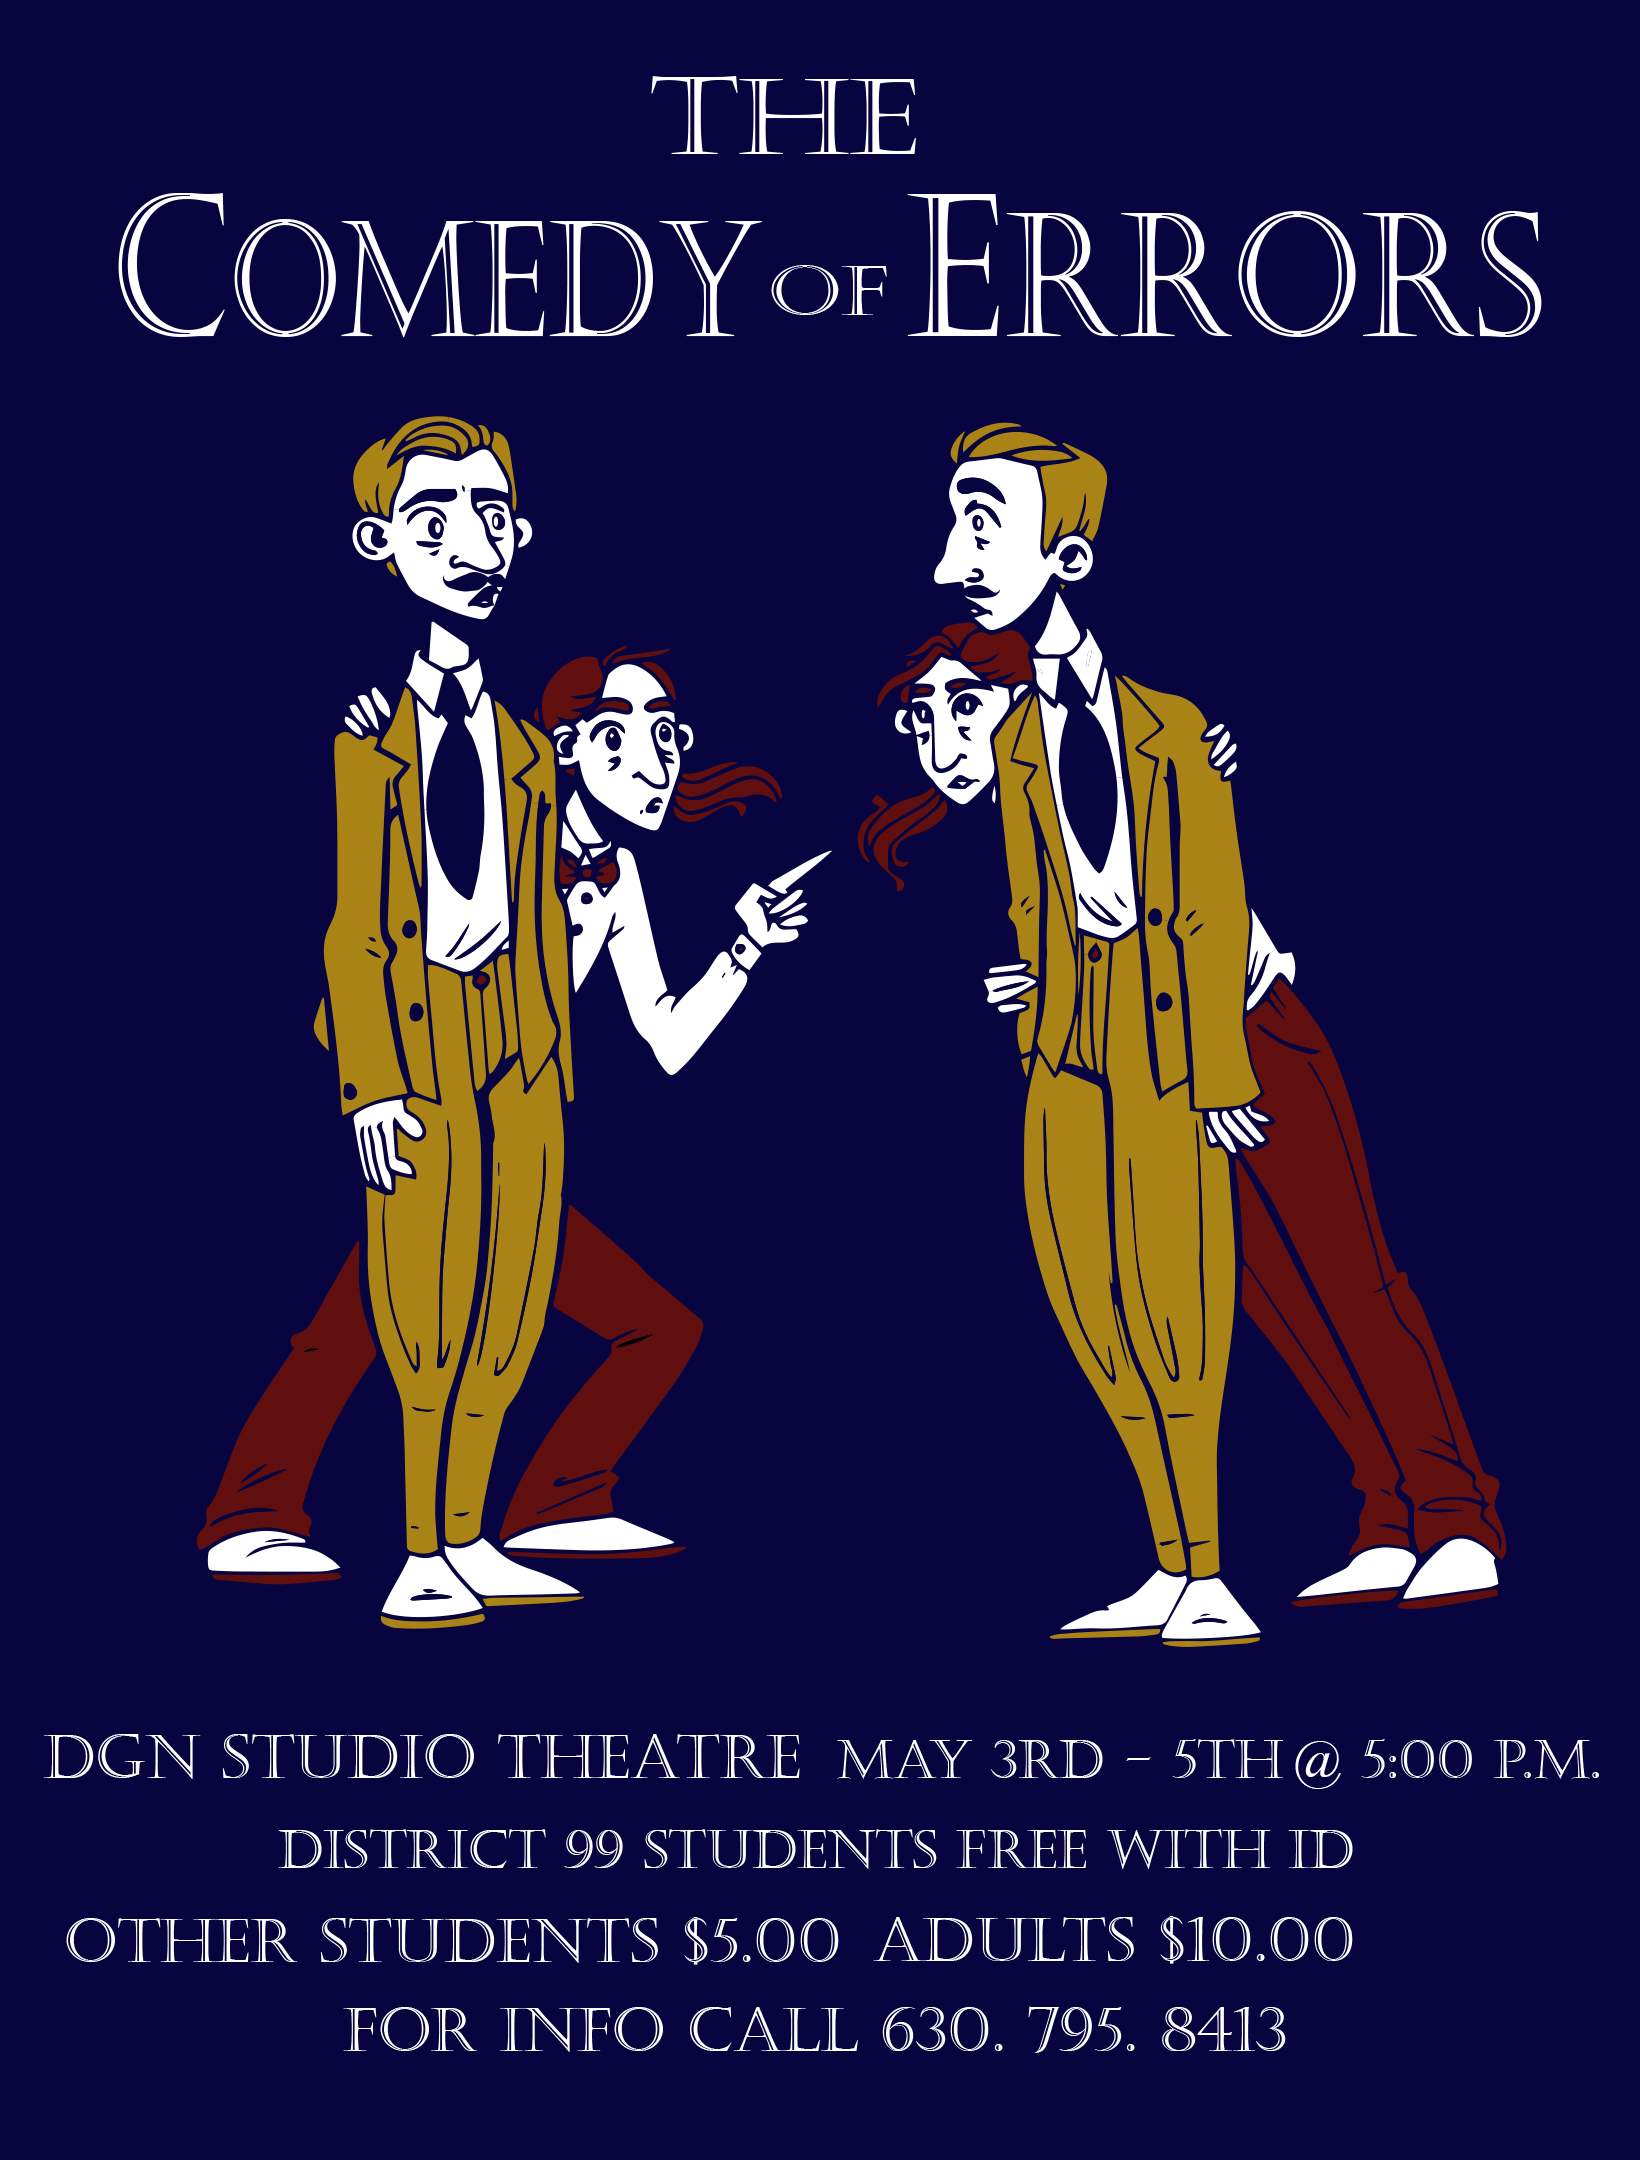 DGN Comedy of Errors poster